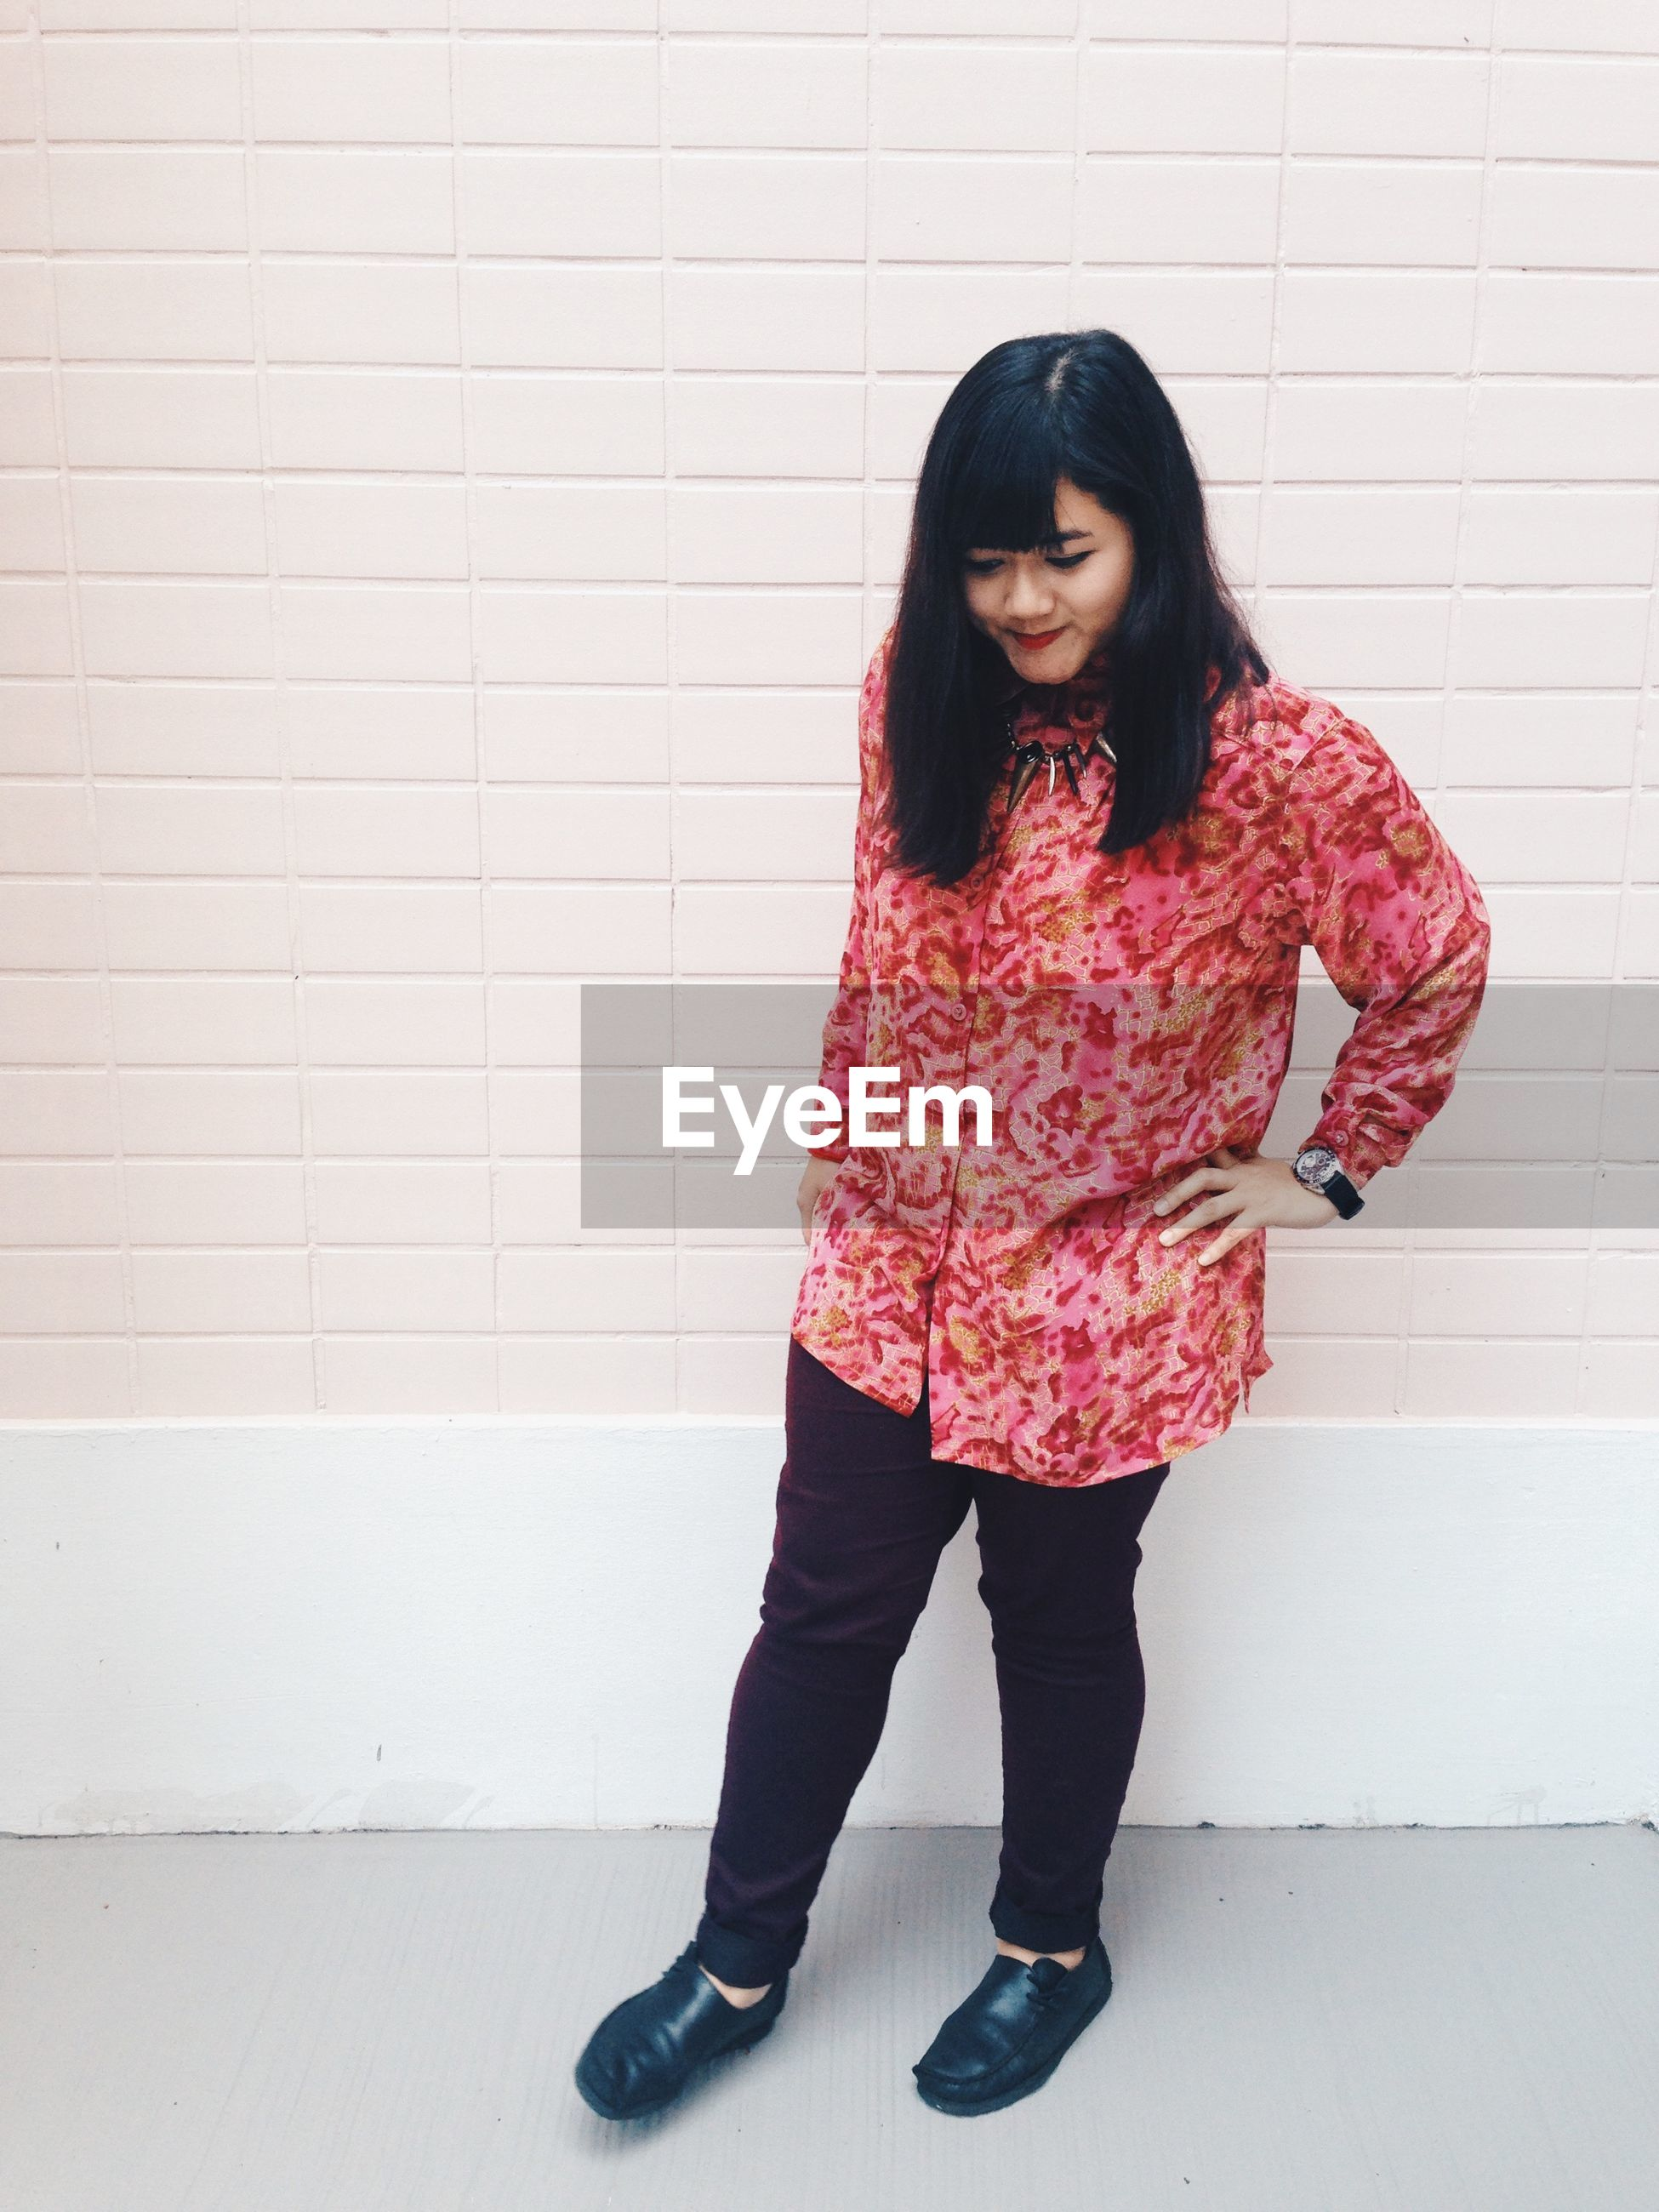 lifestyles, indoors, leisure activity, casual clothing, standing, wall - building feature, full length, young women, front view, holding, person, childhood, young adult, three quarter length, red, girls, fashion